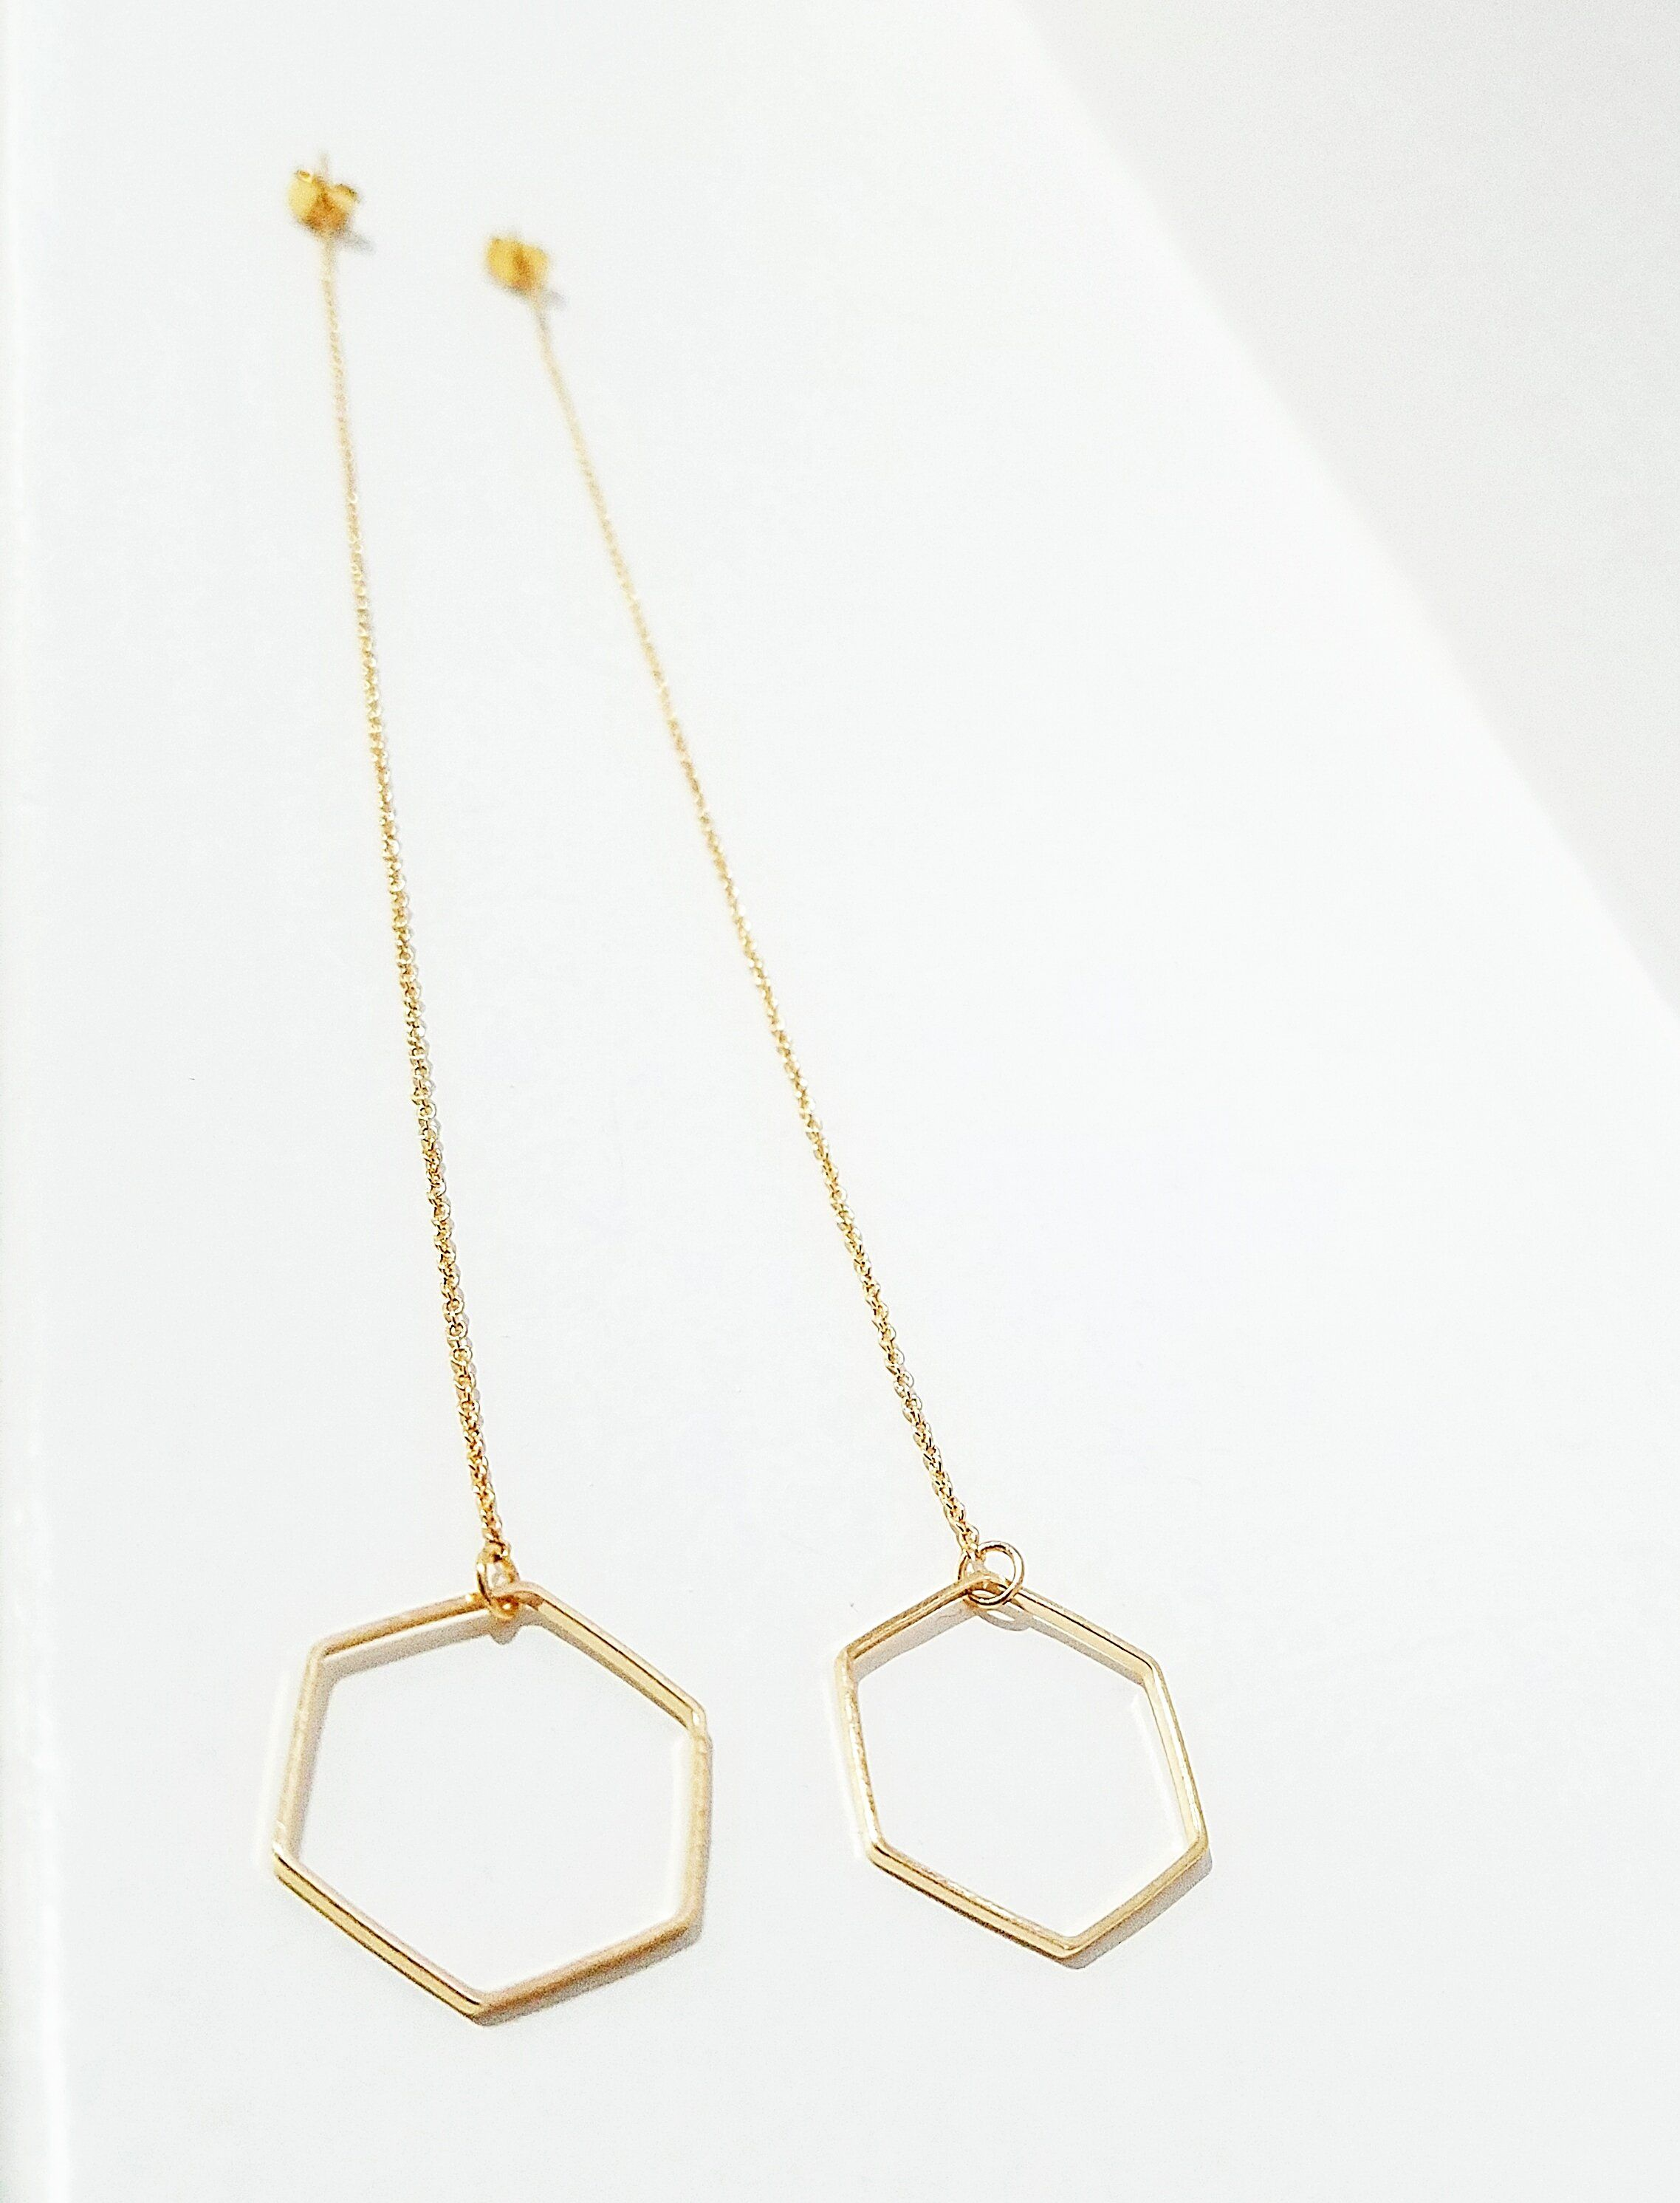 jewelry earrings hexagon mendoza paula product